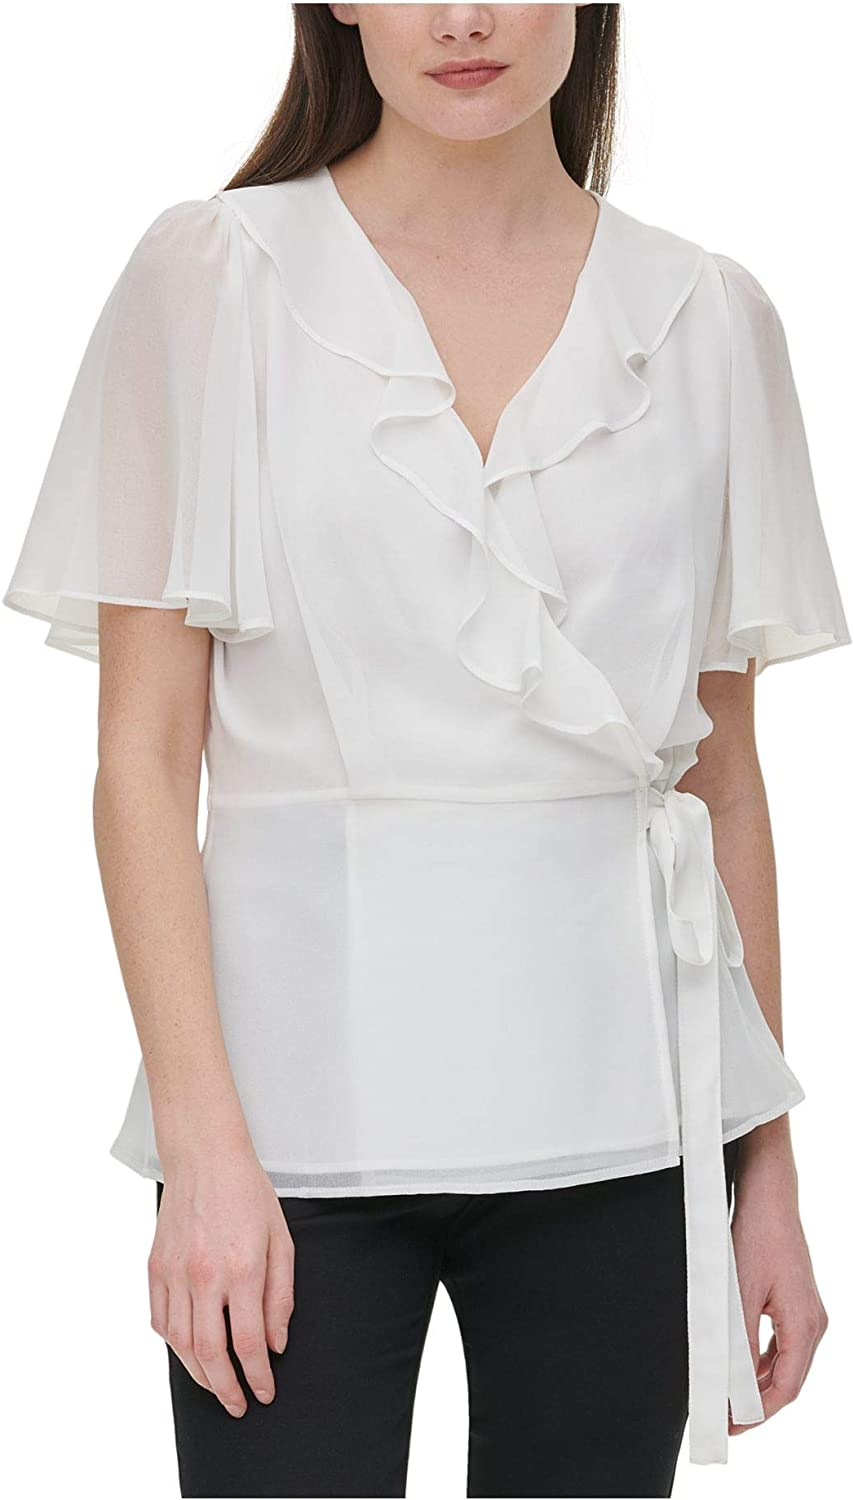 1930s Style Blouses, Shirts, Tops   Vintage Blouses Calvin Klein Womens Wrap Top with Ruffle Sleeve  AT vintagedancer.com